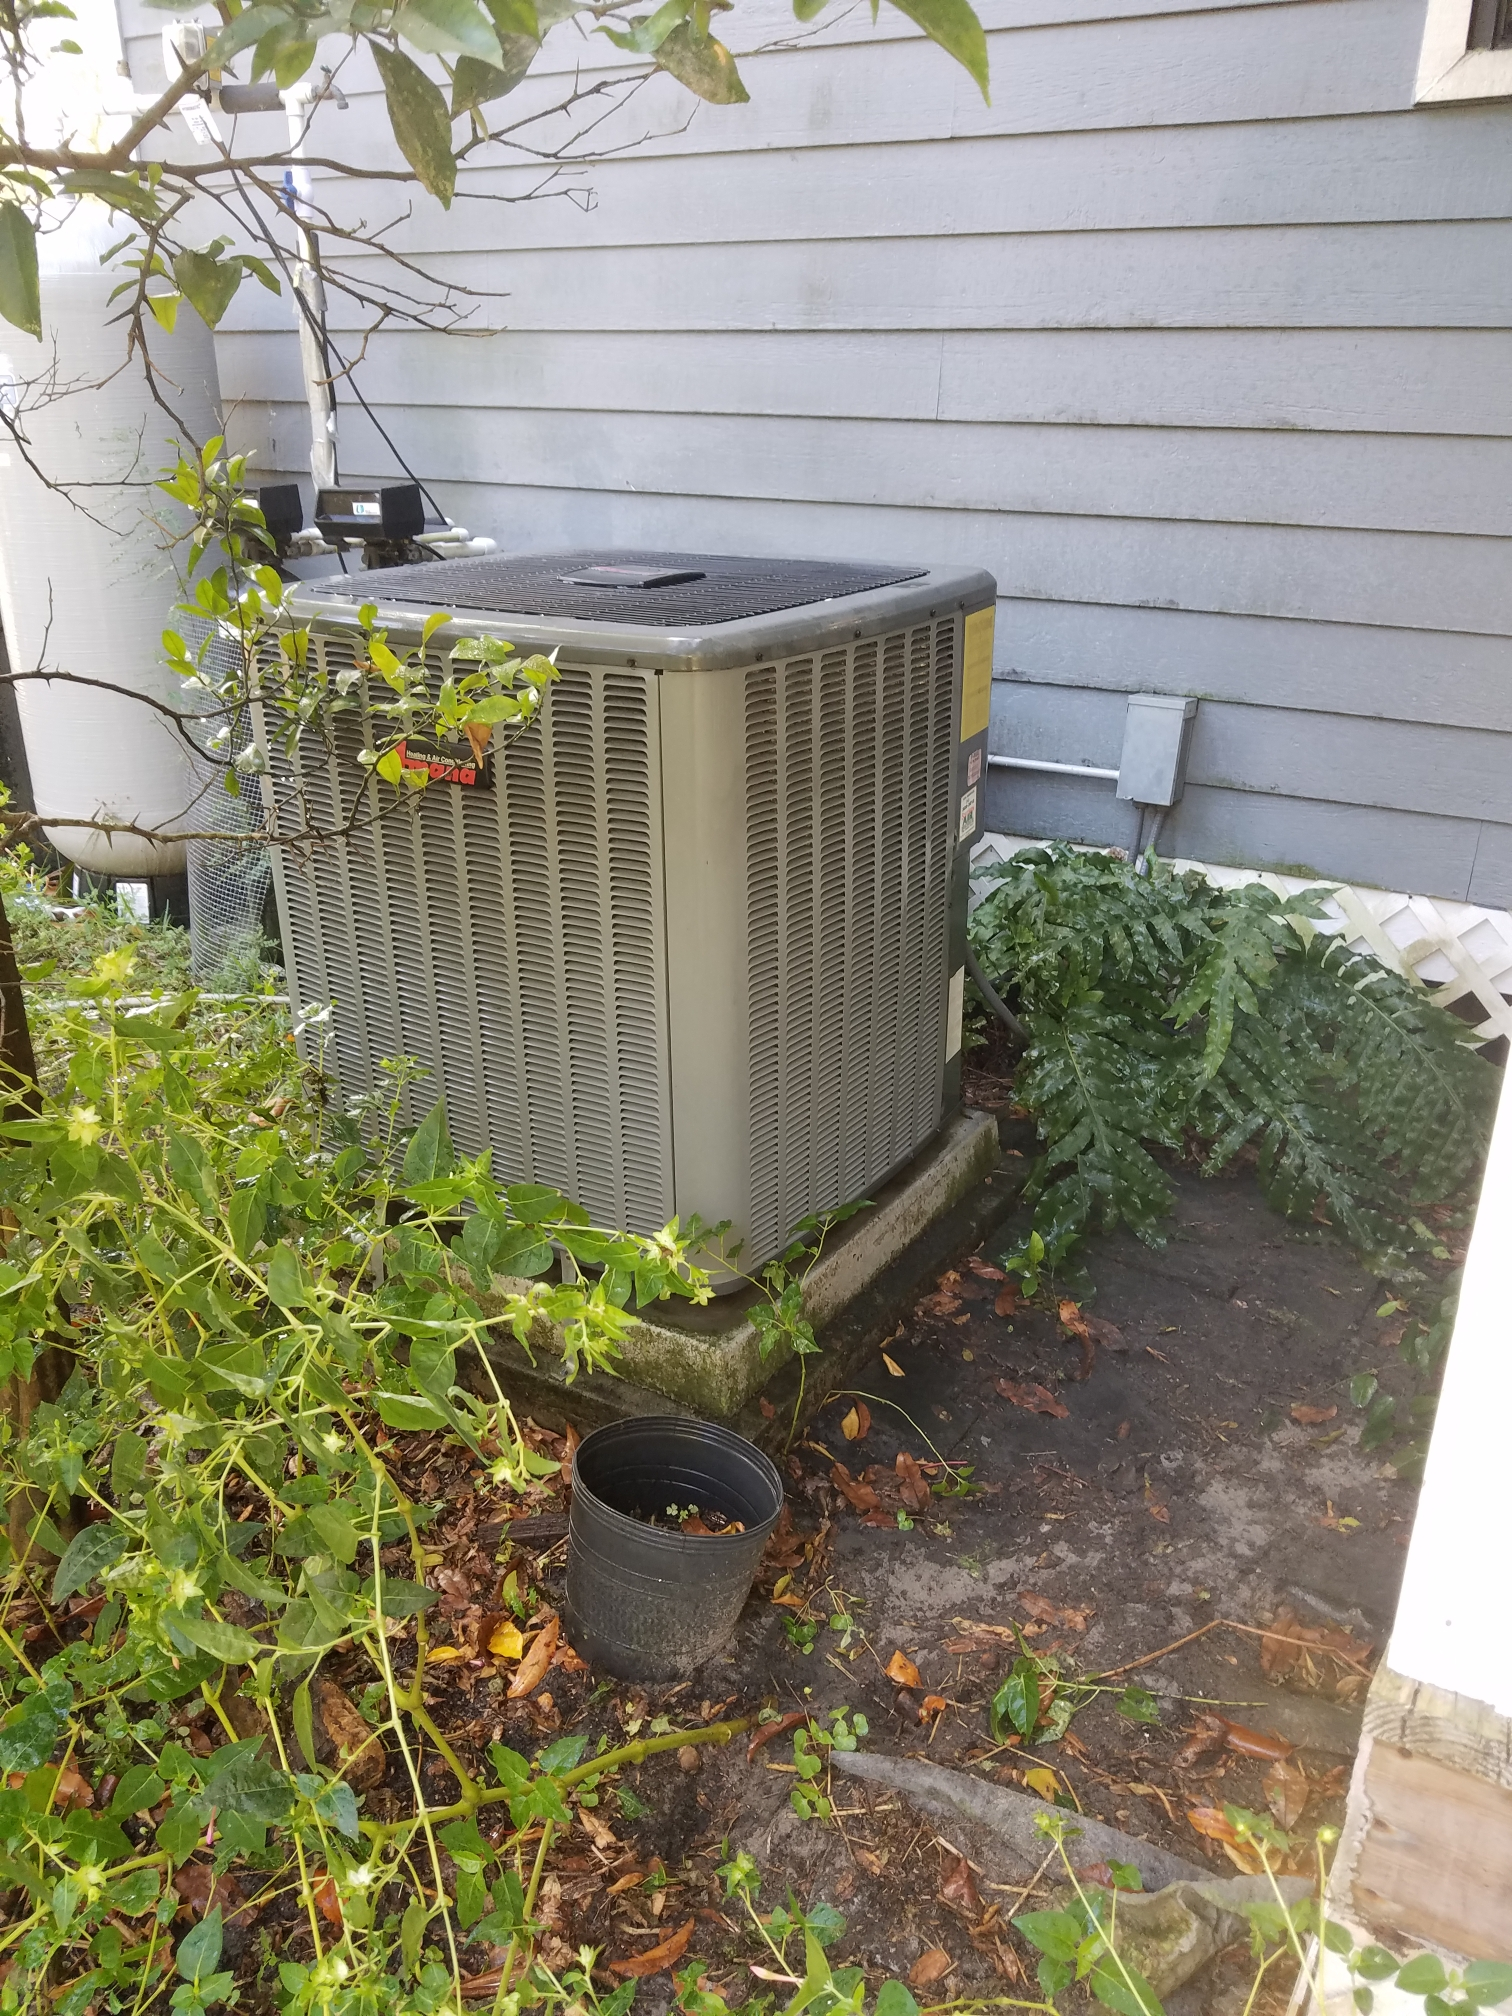 Keystone Heights, FL - Maintenance on amana